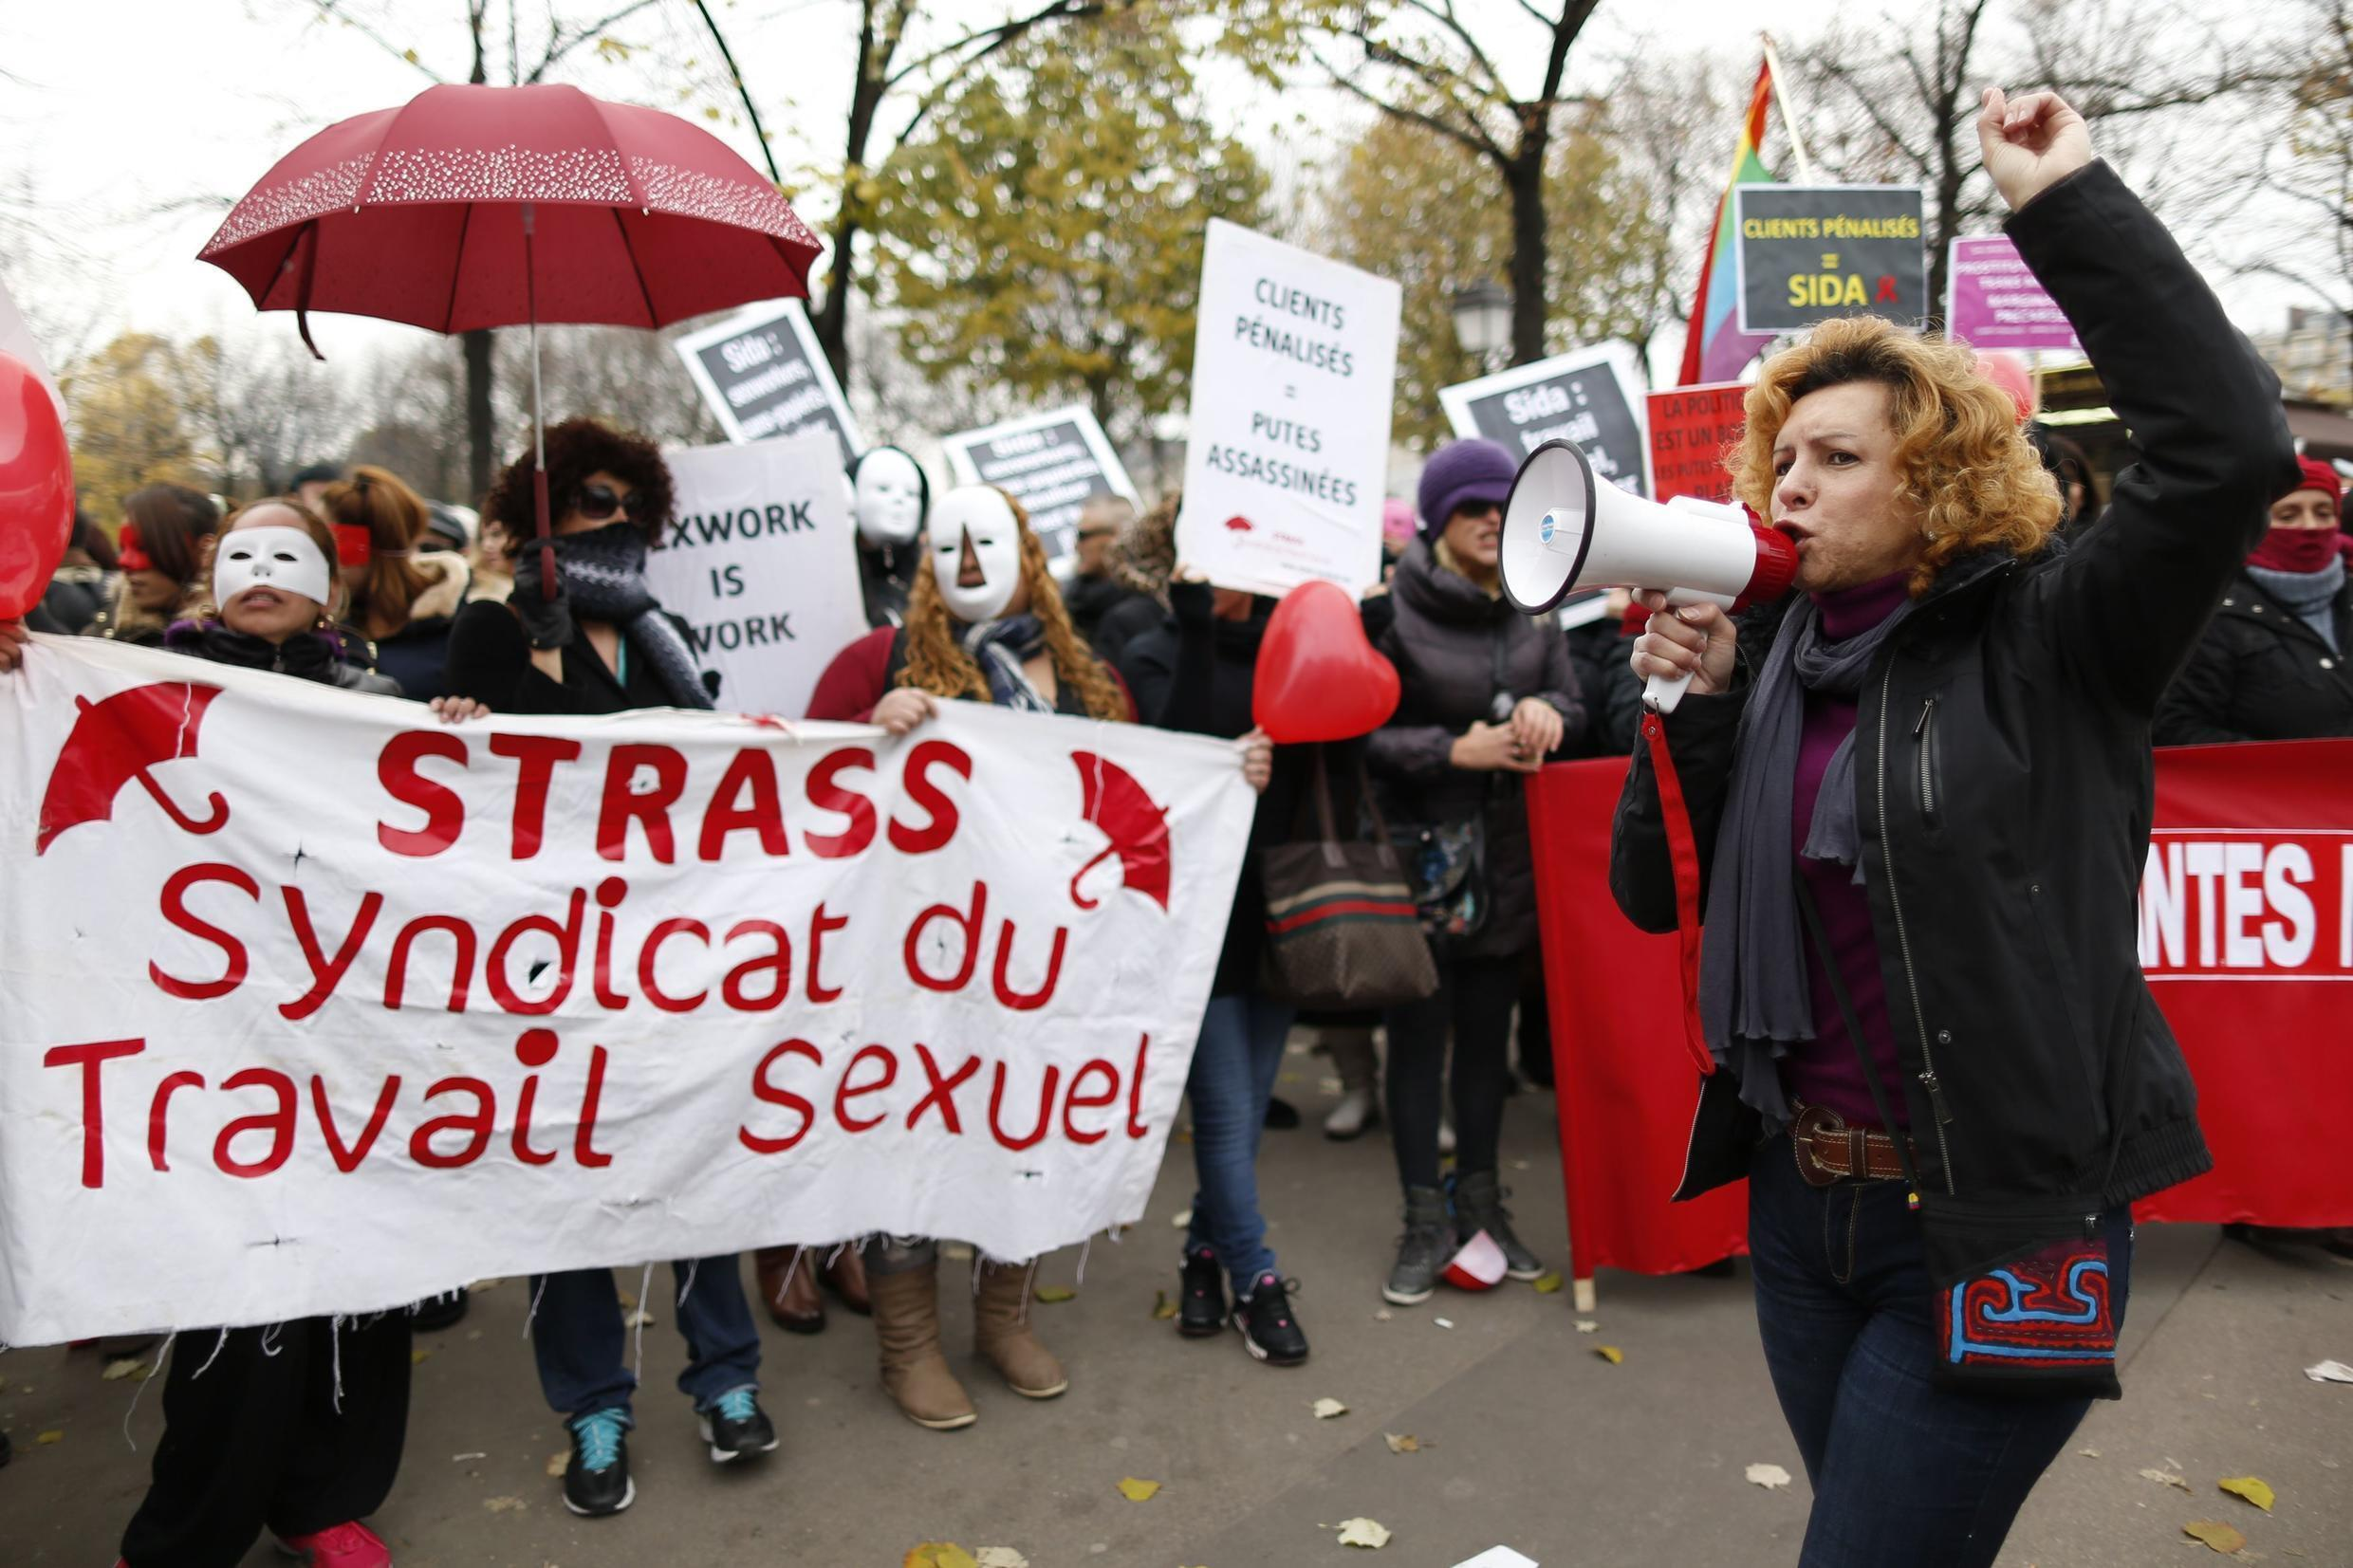 Sex workers are protesting in Paris on this 29 November, 2013